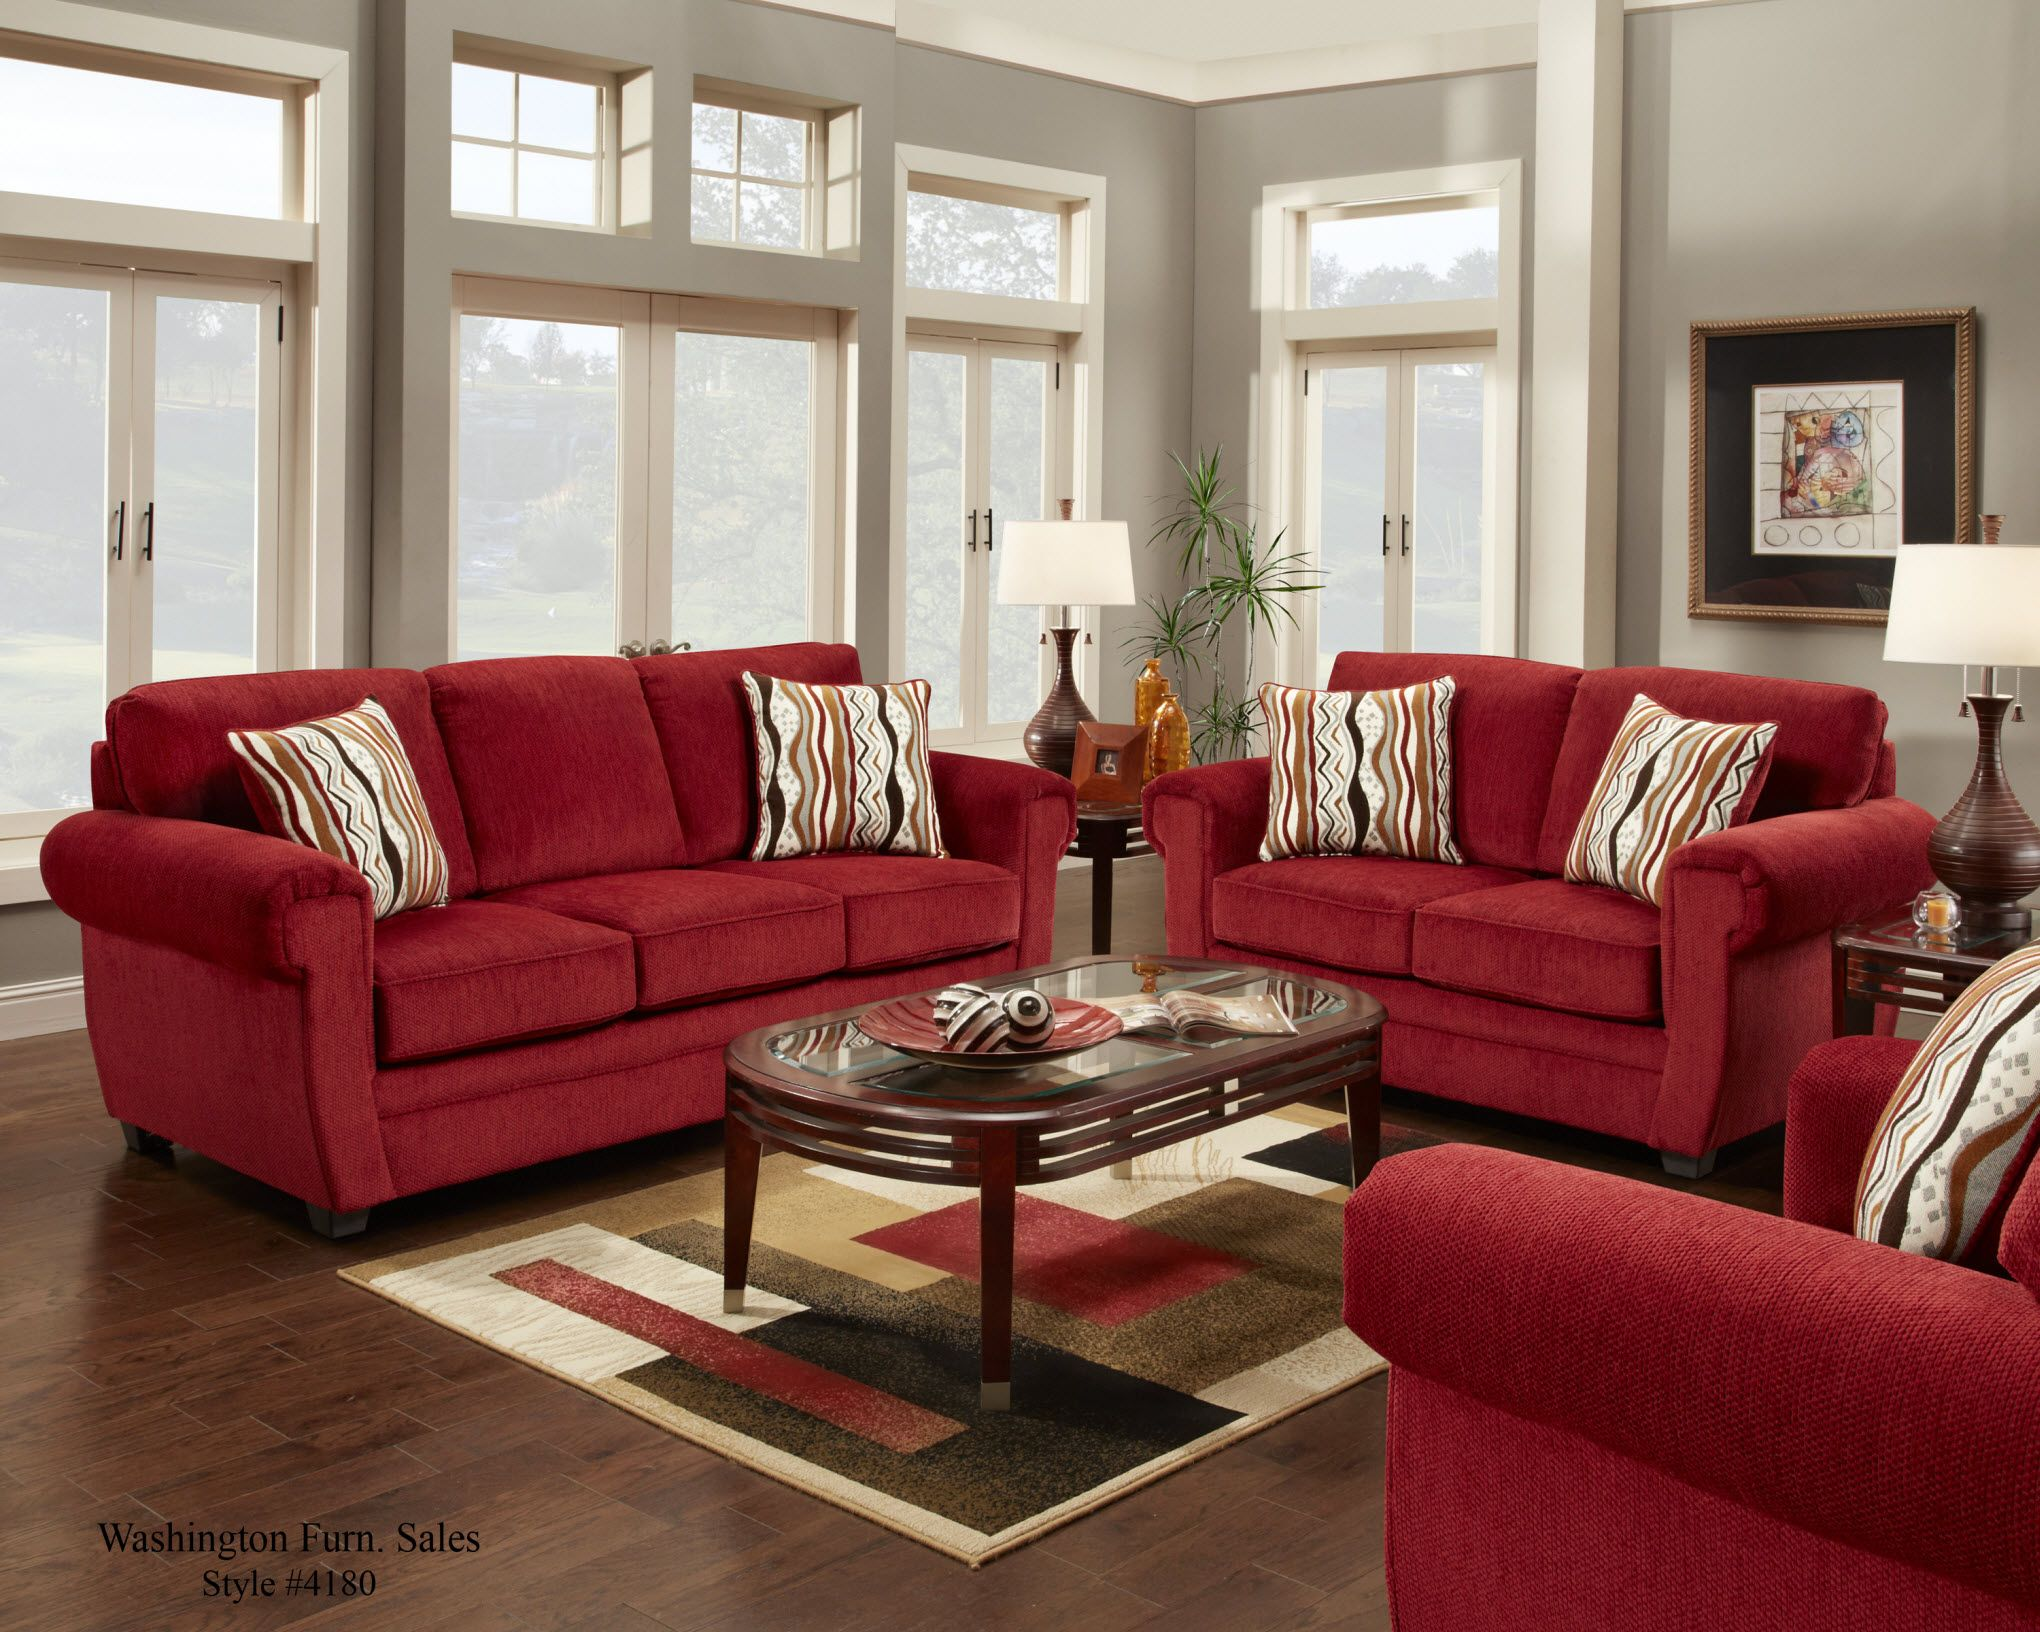 images of living room with red sofa bed 160 cm width 4180 washington samson and loveseat www